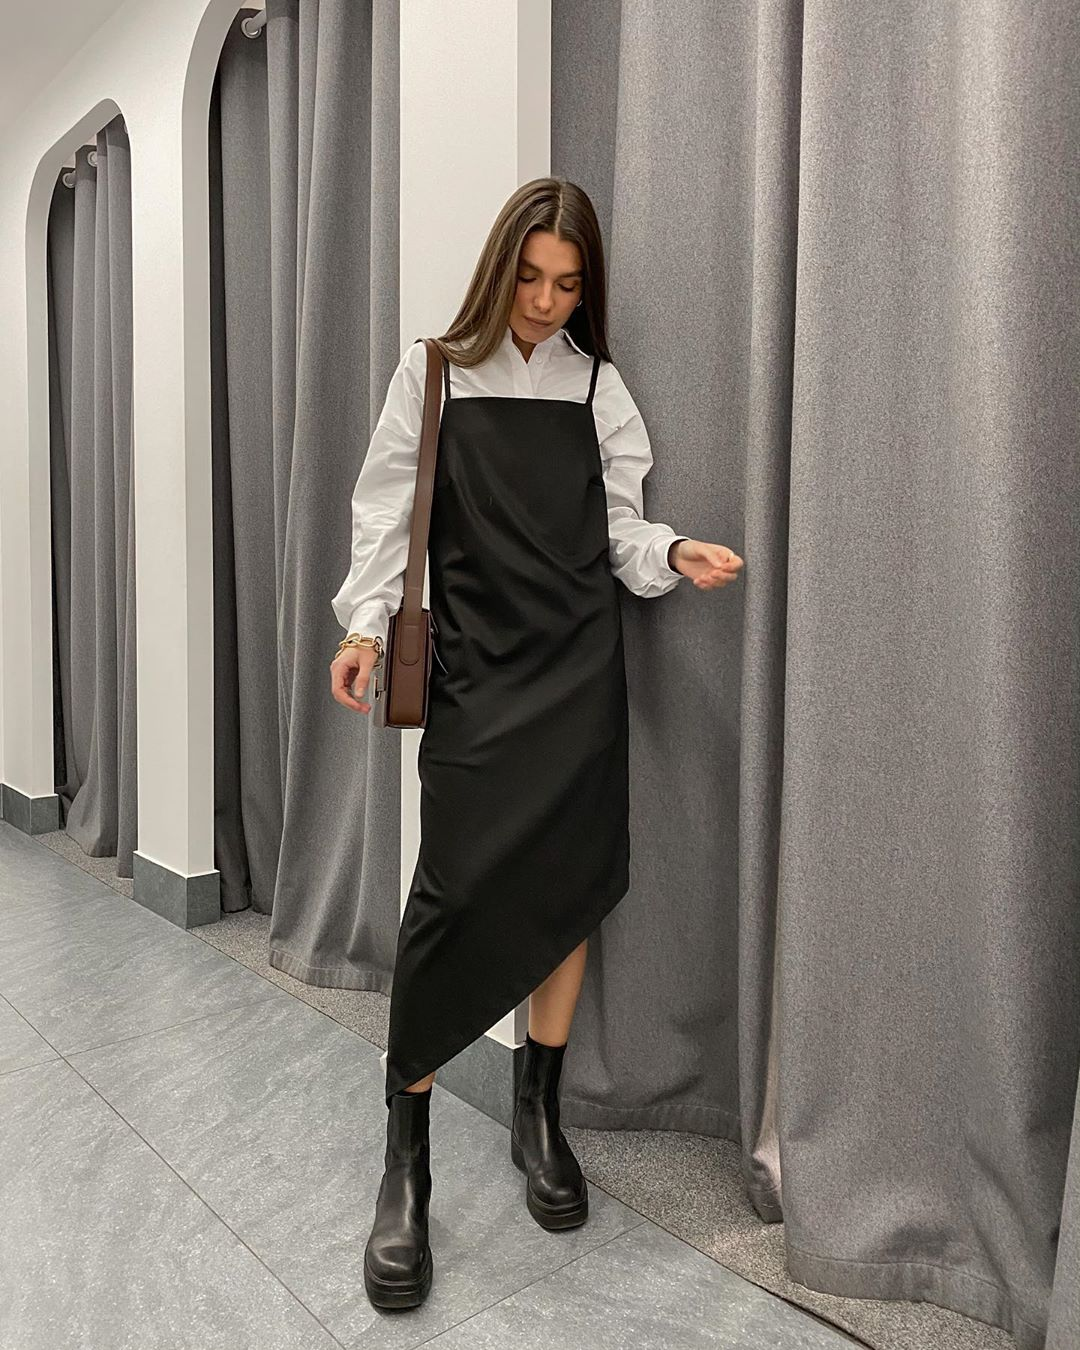 How to Transition a Slip Dress Into Spring — Instagram Outfit: White Button-Down Shirt, Black Silk Dress, and Chunky Black Lug Sole Boots